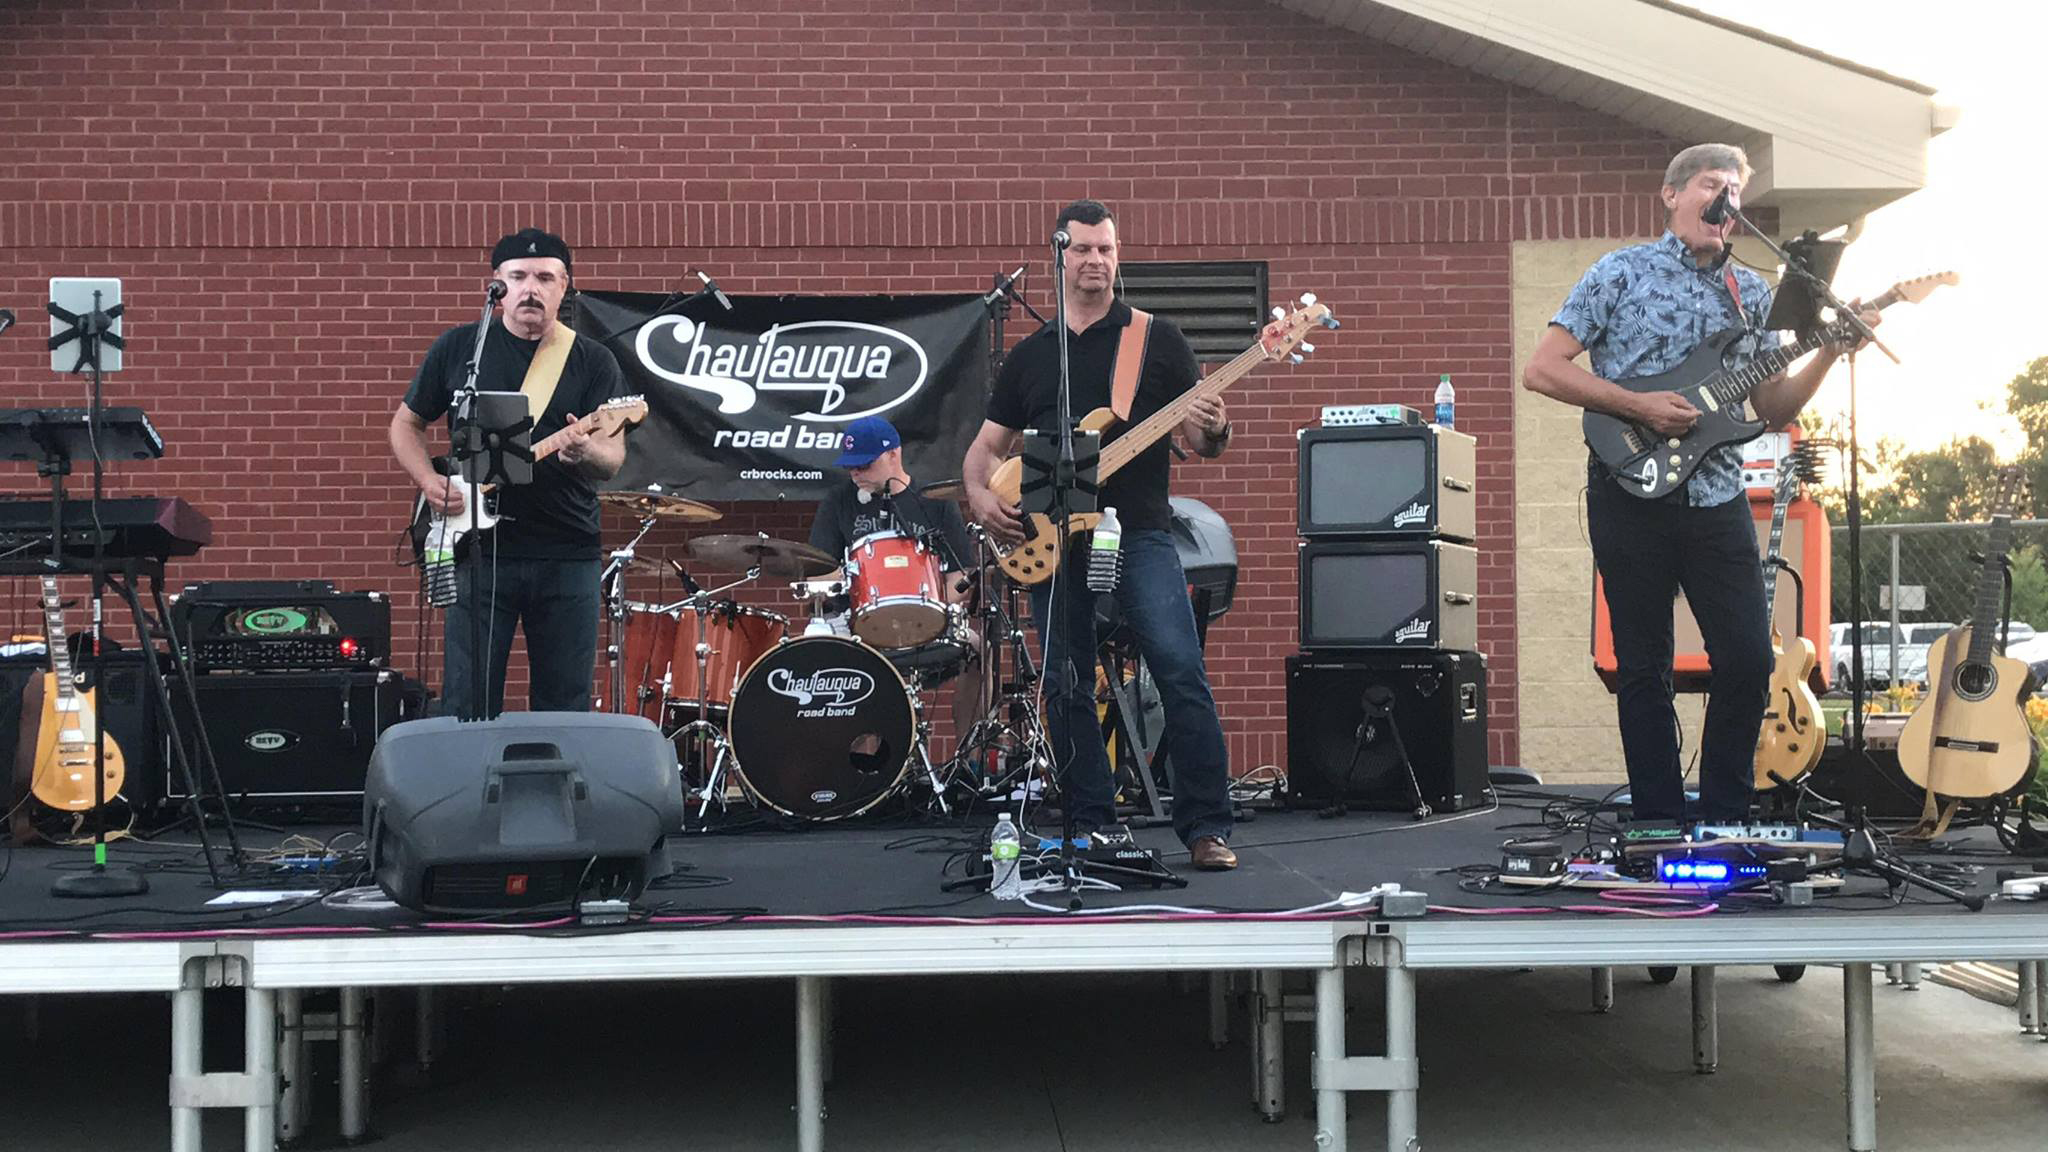 Chautauqua Road Band at Red Oak All-Class Reunion 2018: James, Paul, Mike, and Gregg